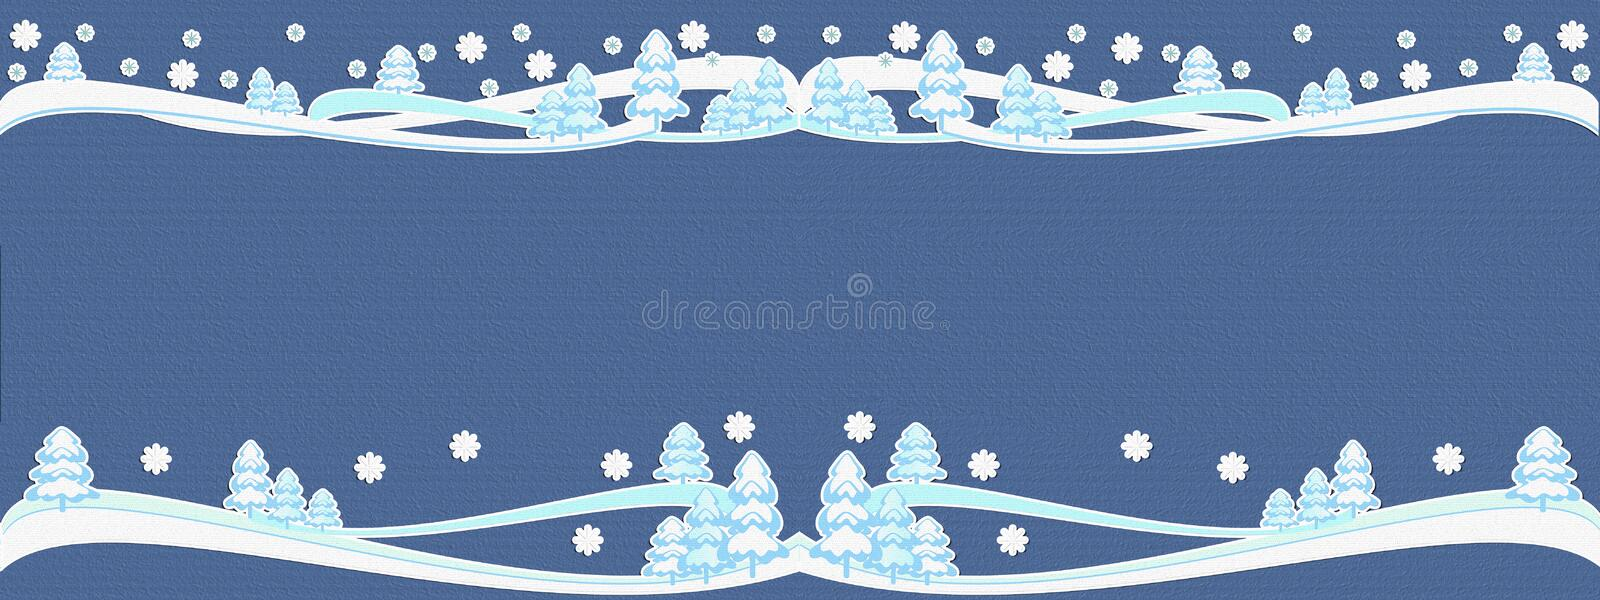 winter illustration navy blue, textured backdrop, snowy trees fairy. Elegant design for title & headline. 2019. stock illustration